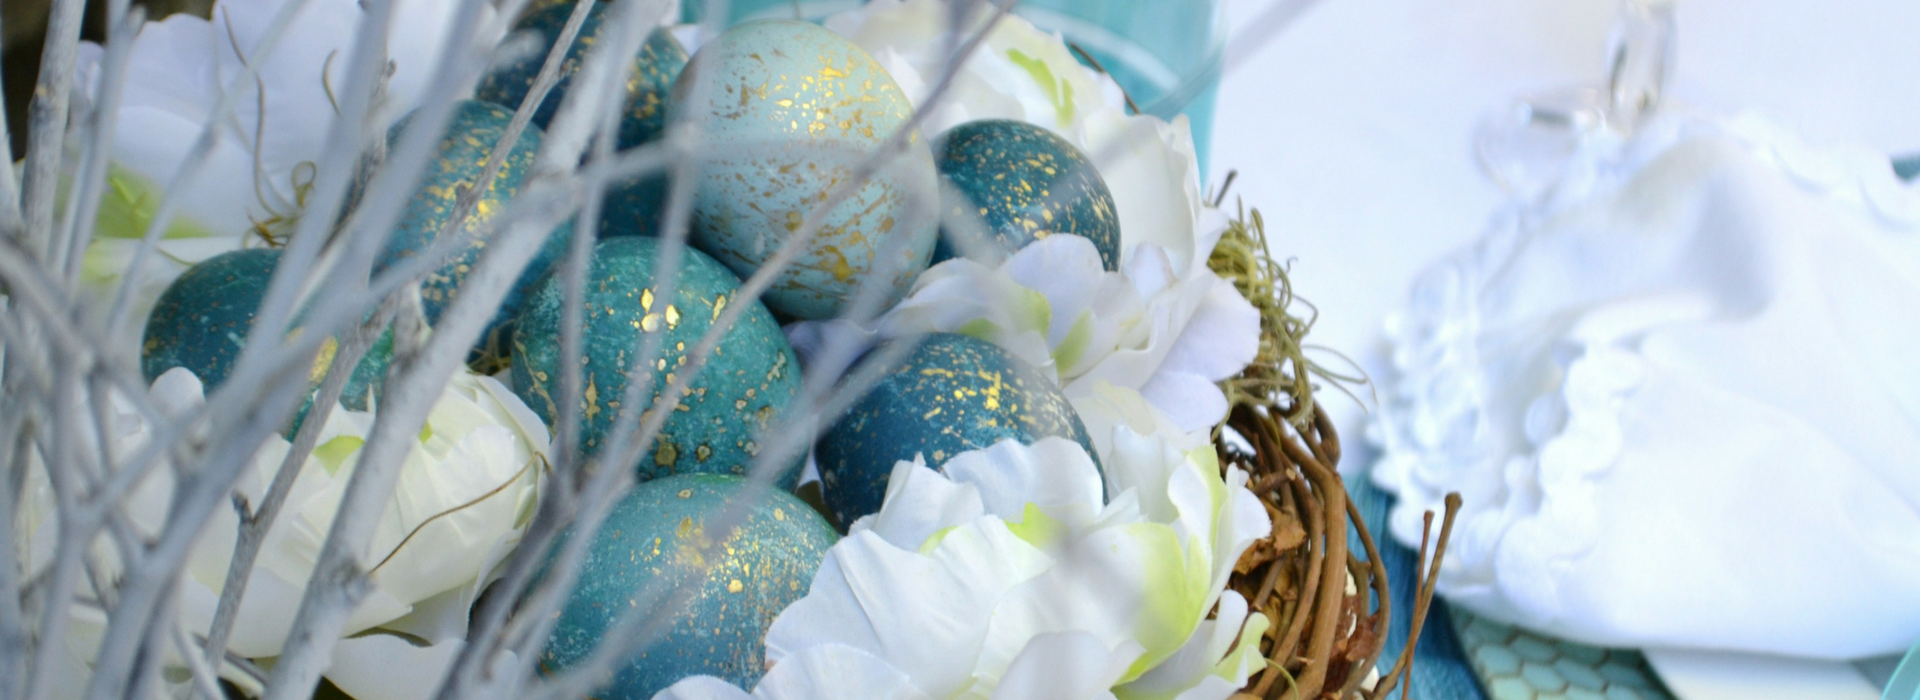 Easter Egg Centerpiece-Slider-lizbushong.com